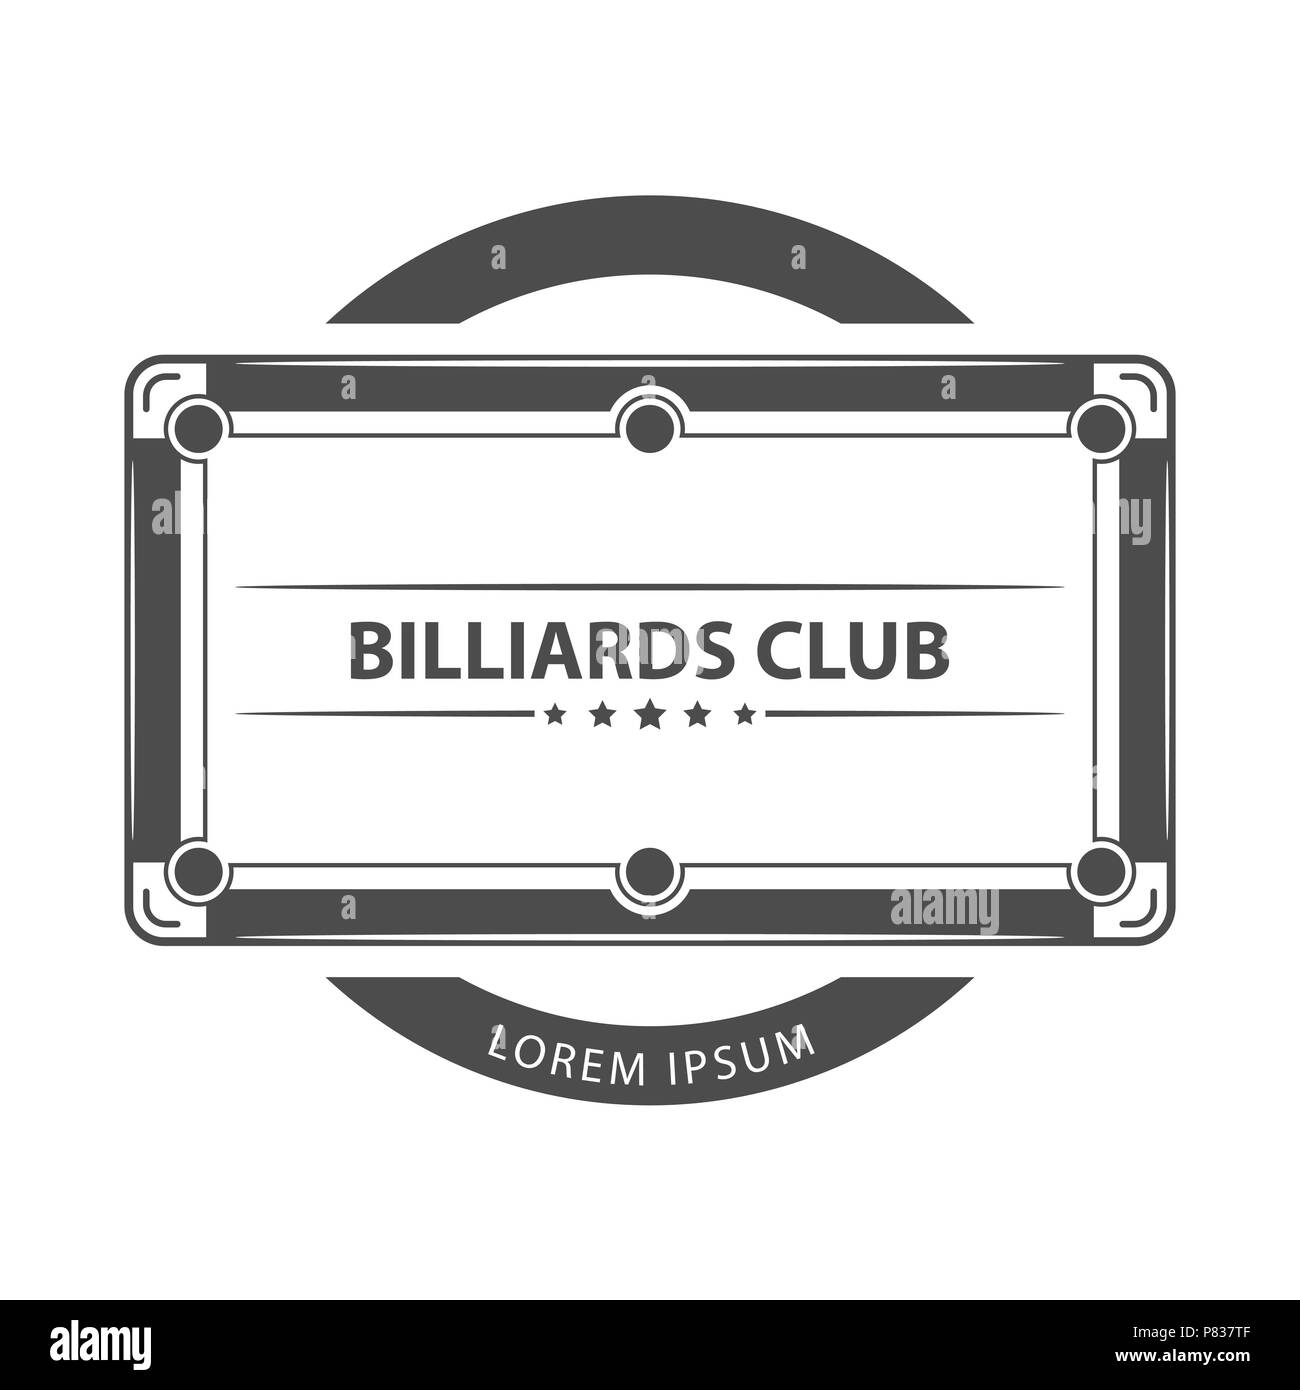 Billiard, game with text logo. - Stock Vector